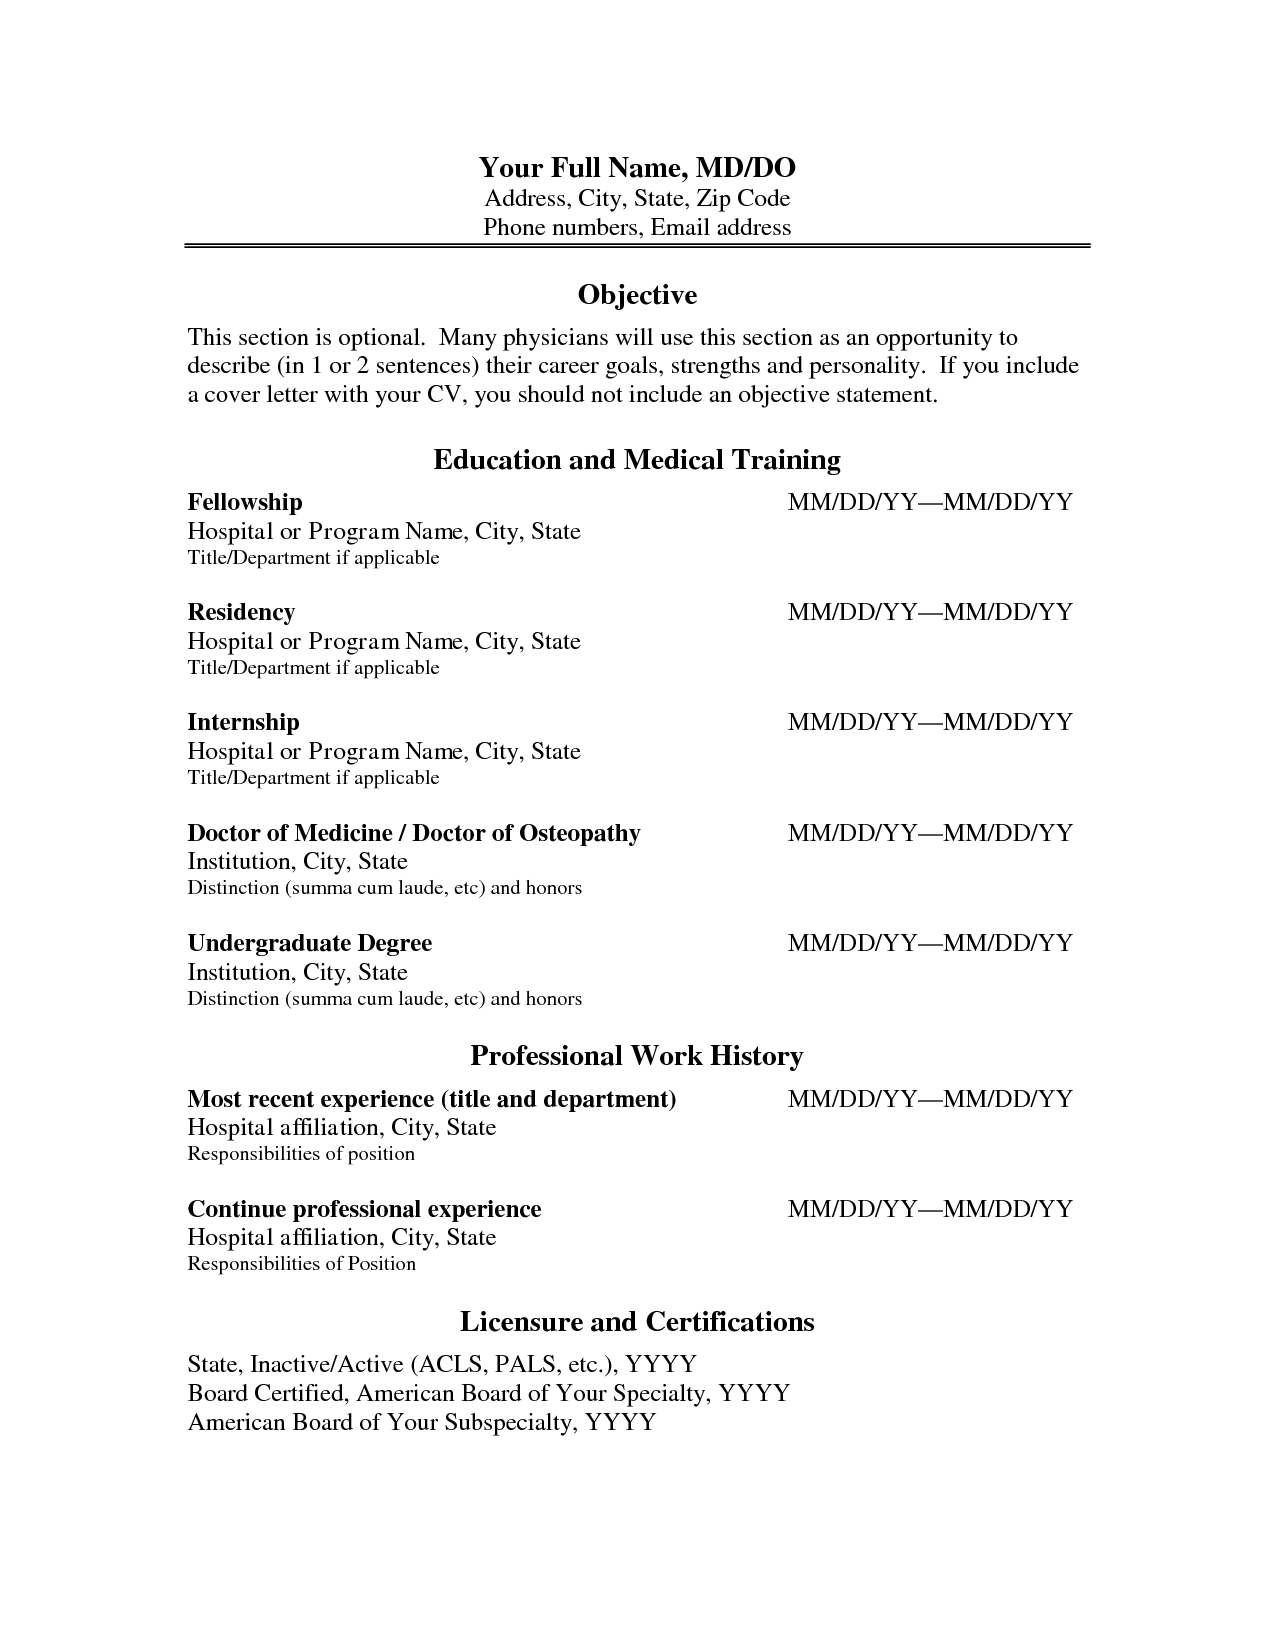 Cv Format Physician Physician Assistant Resume And Curriculum Vitae